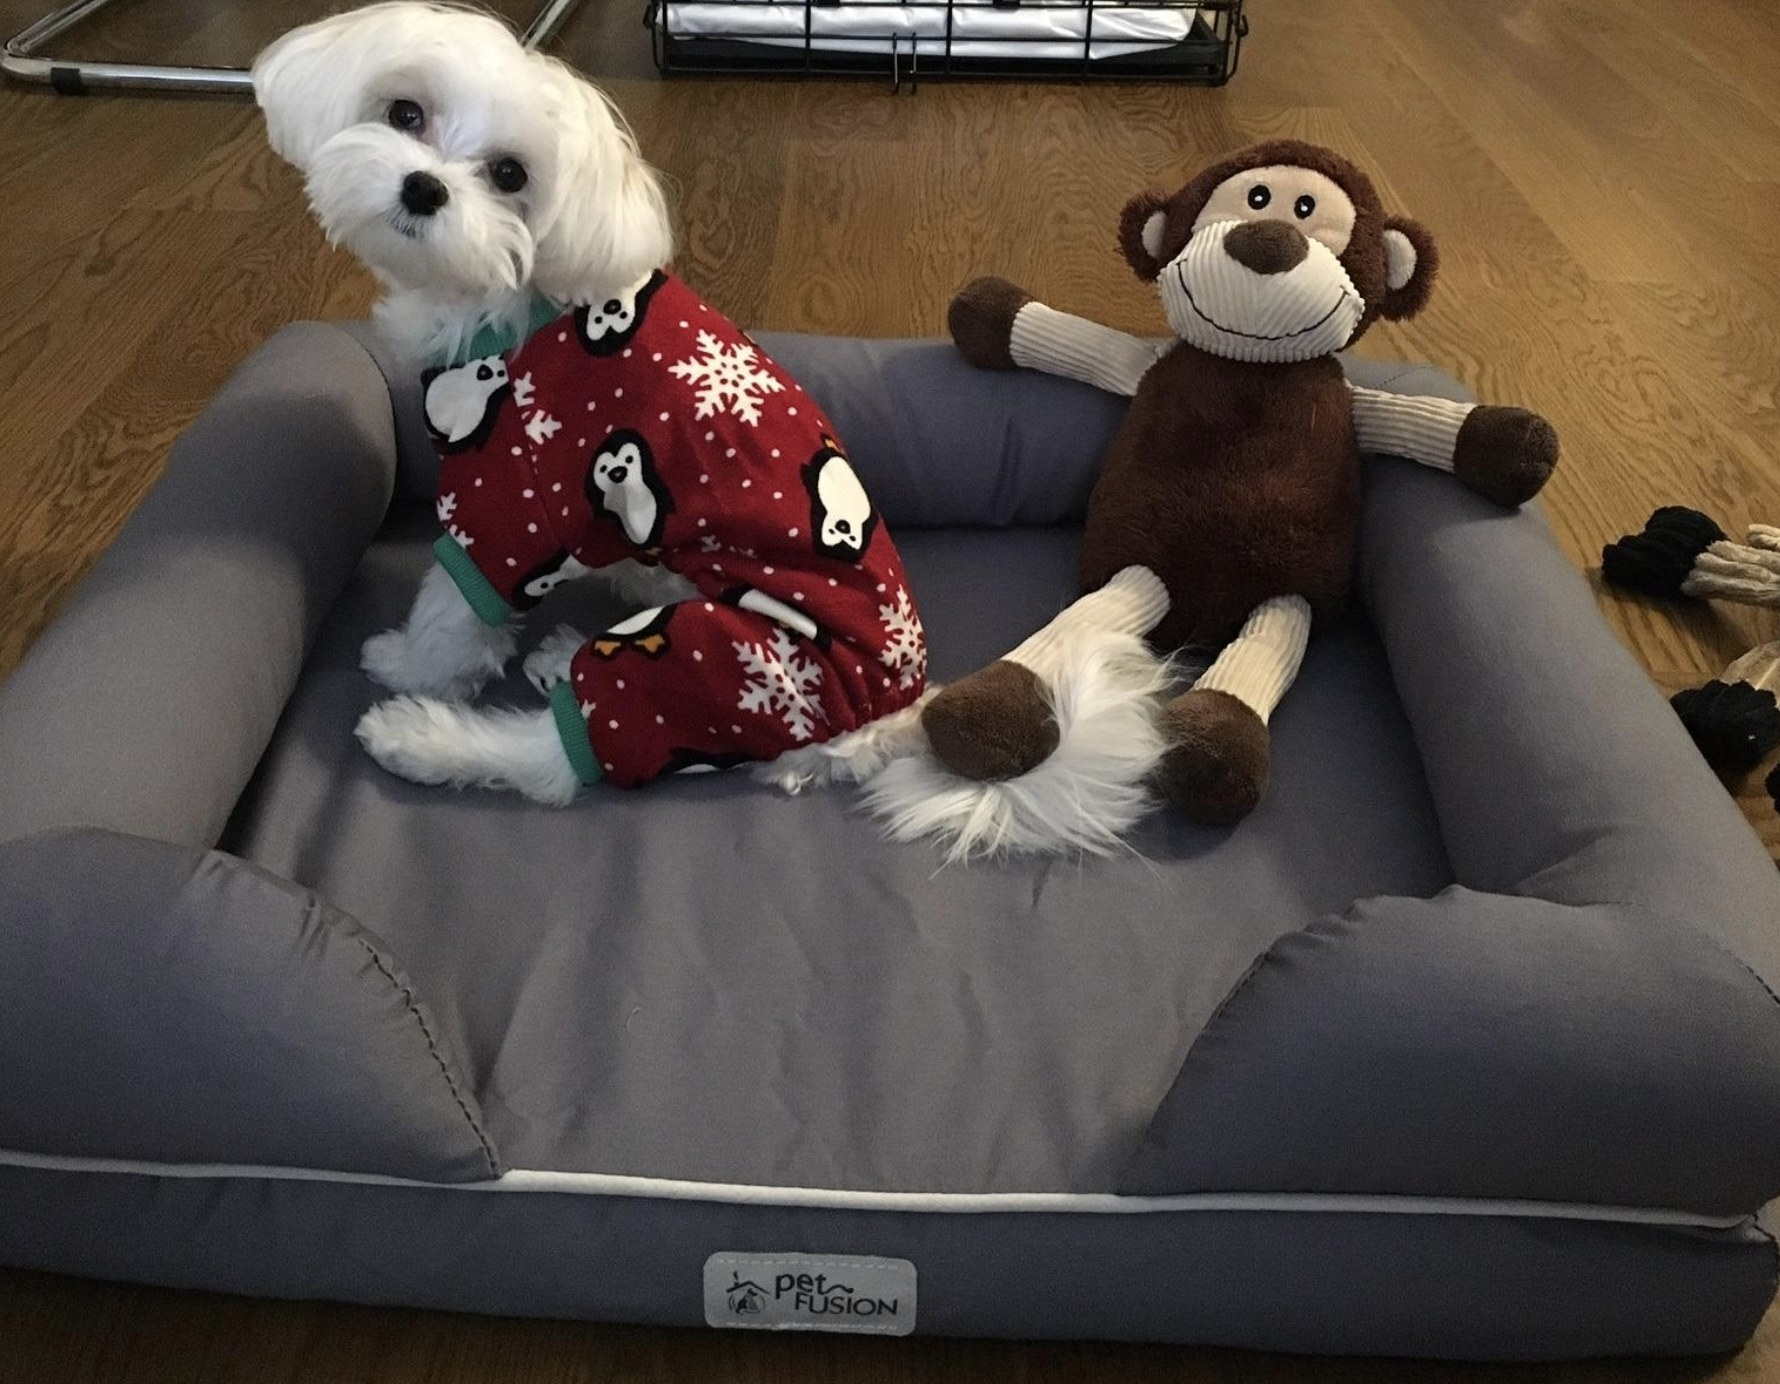 a reviewers dog with holiday pajamas on sitting on a grey dog bed